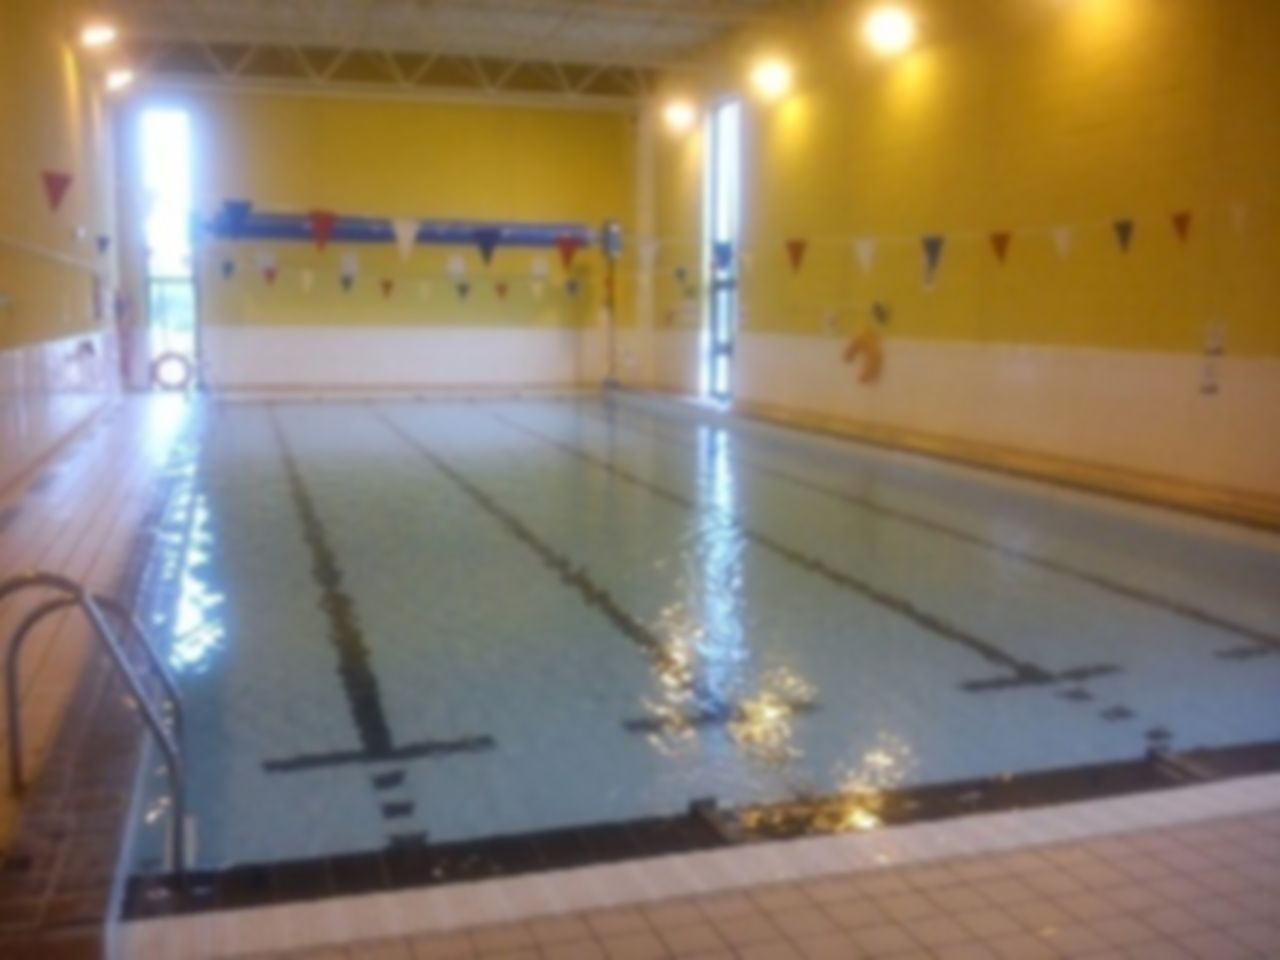 Monifieth high school pool flexible gym passes dd5 dundee - Dundee swimming pool opening times ...